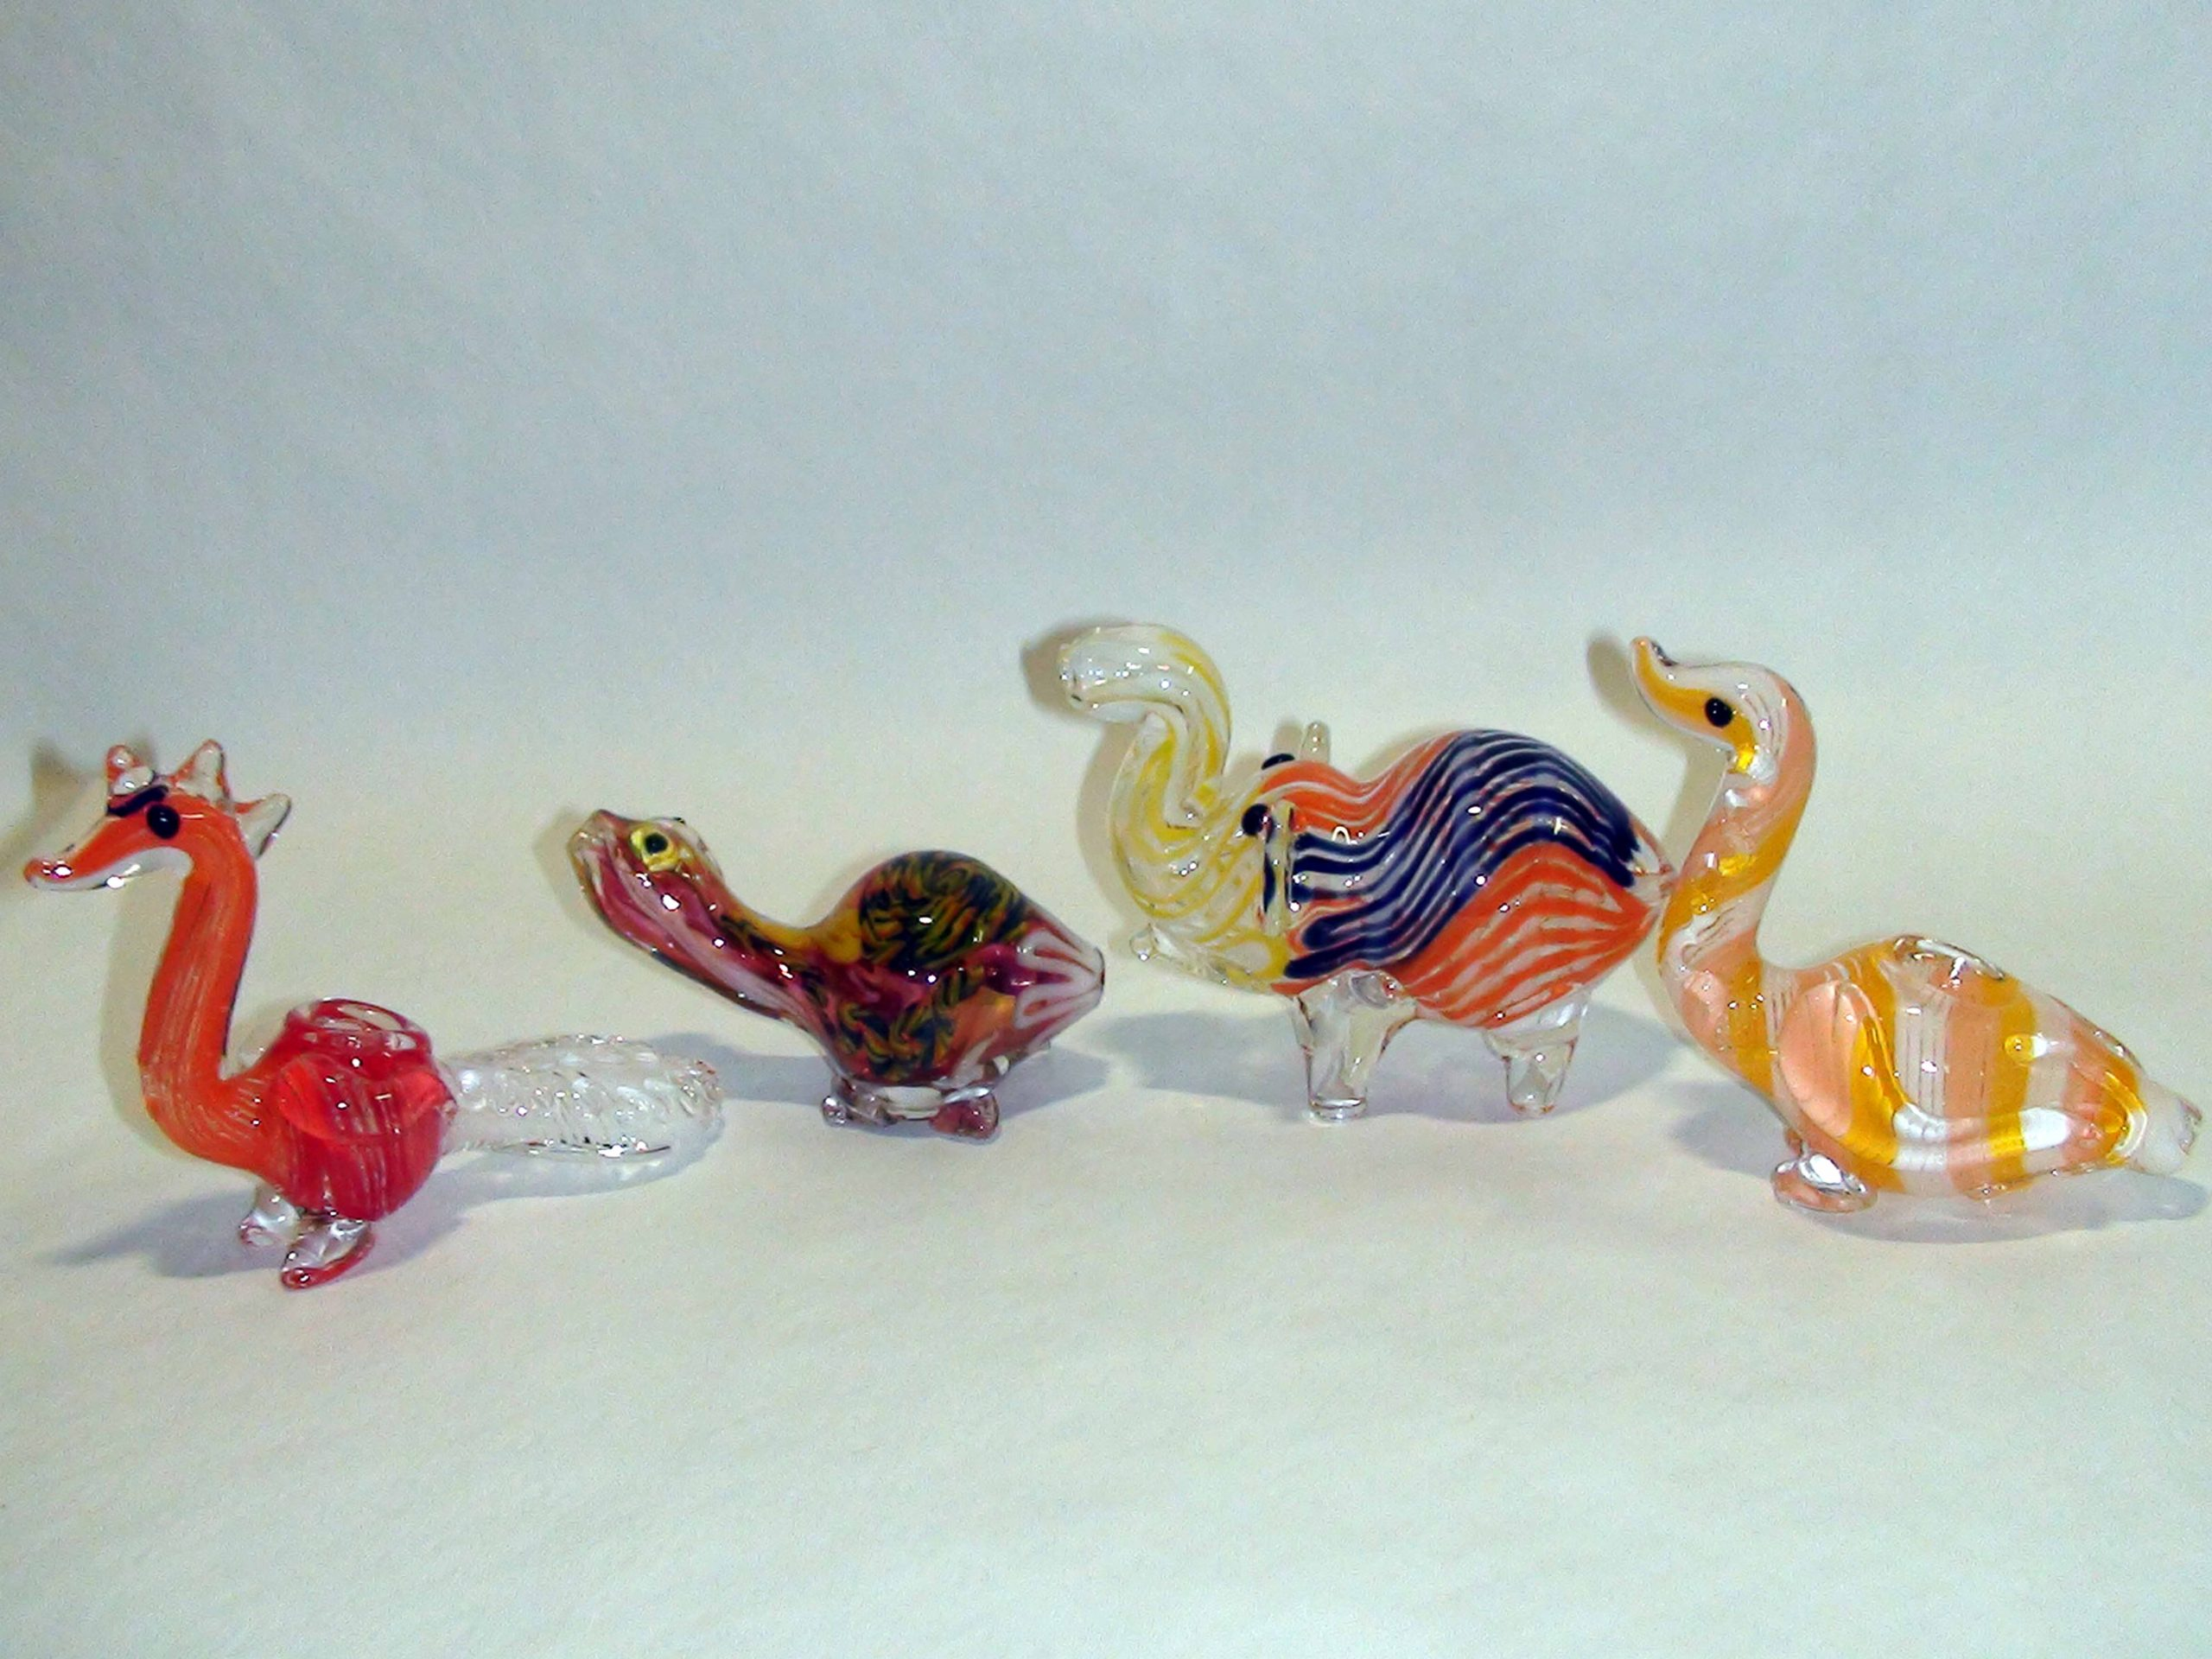 Animal Shaped Bubblers